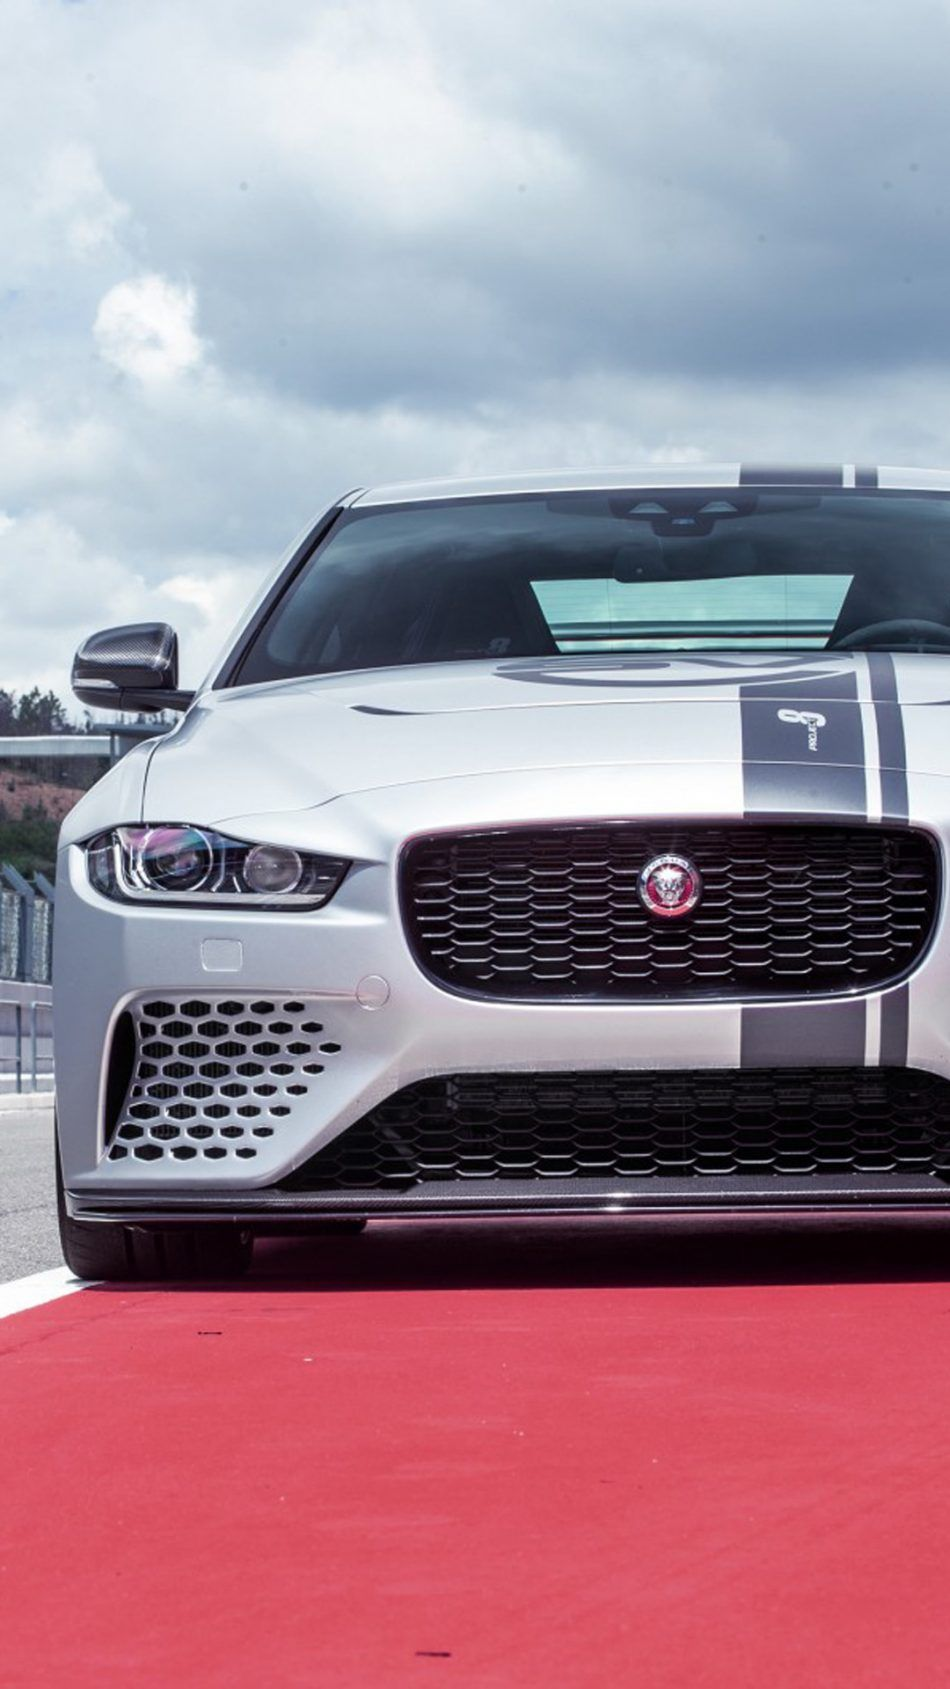 Jaguar Xe Sv Project 8 Car Wallpapers Jaguar Jaguar Xe Cars